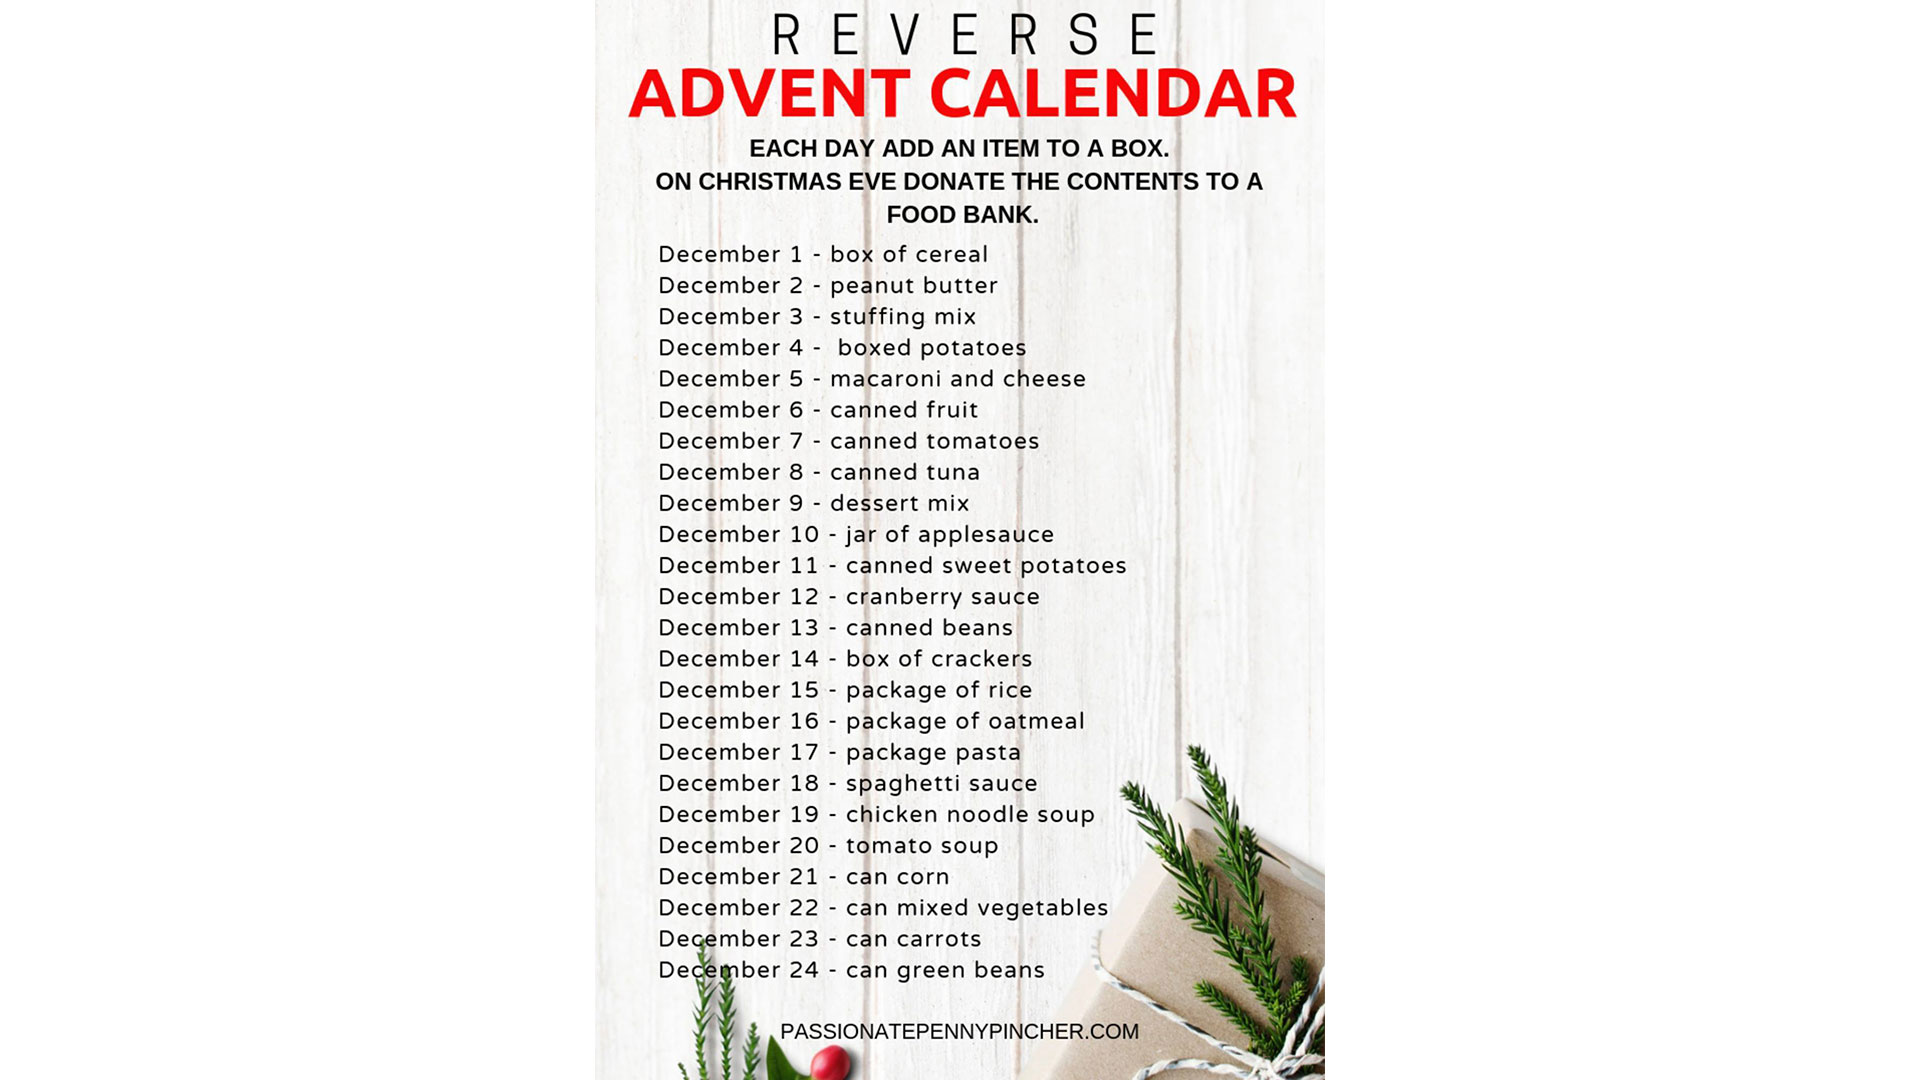 """This """"Reverse Advent Calendar"""" Makes Donating to Your Local Food Bank Fun and Festive"""